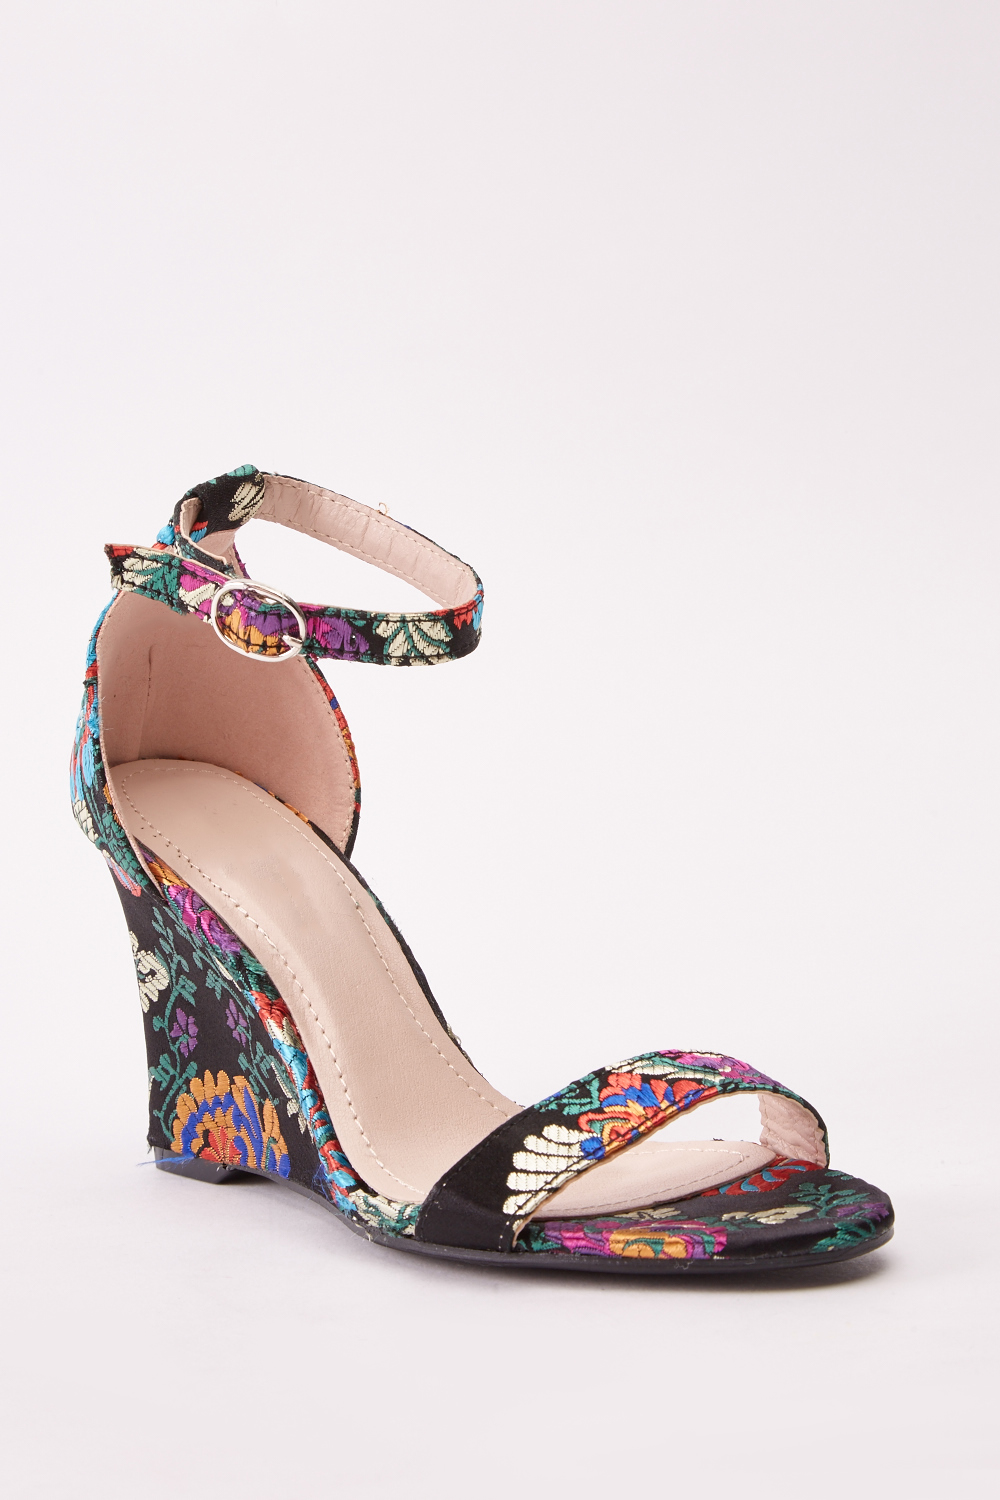 2a7856487ce9 Embroidered Wedge Floral Sandals - Just £5